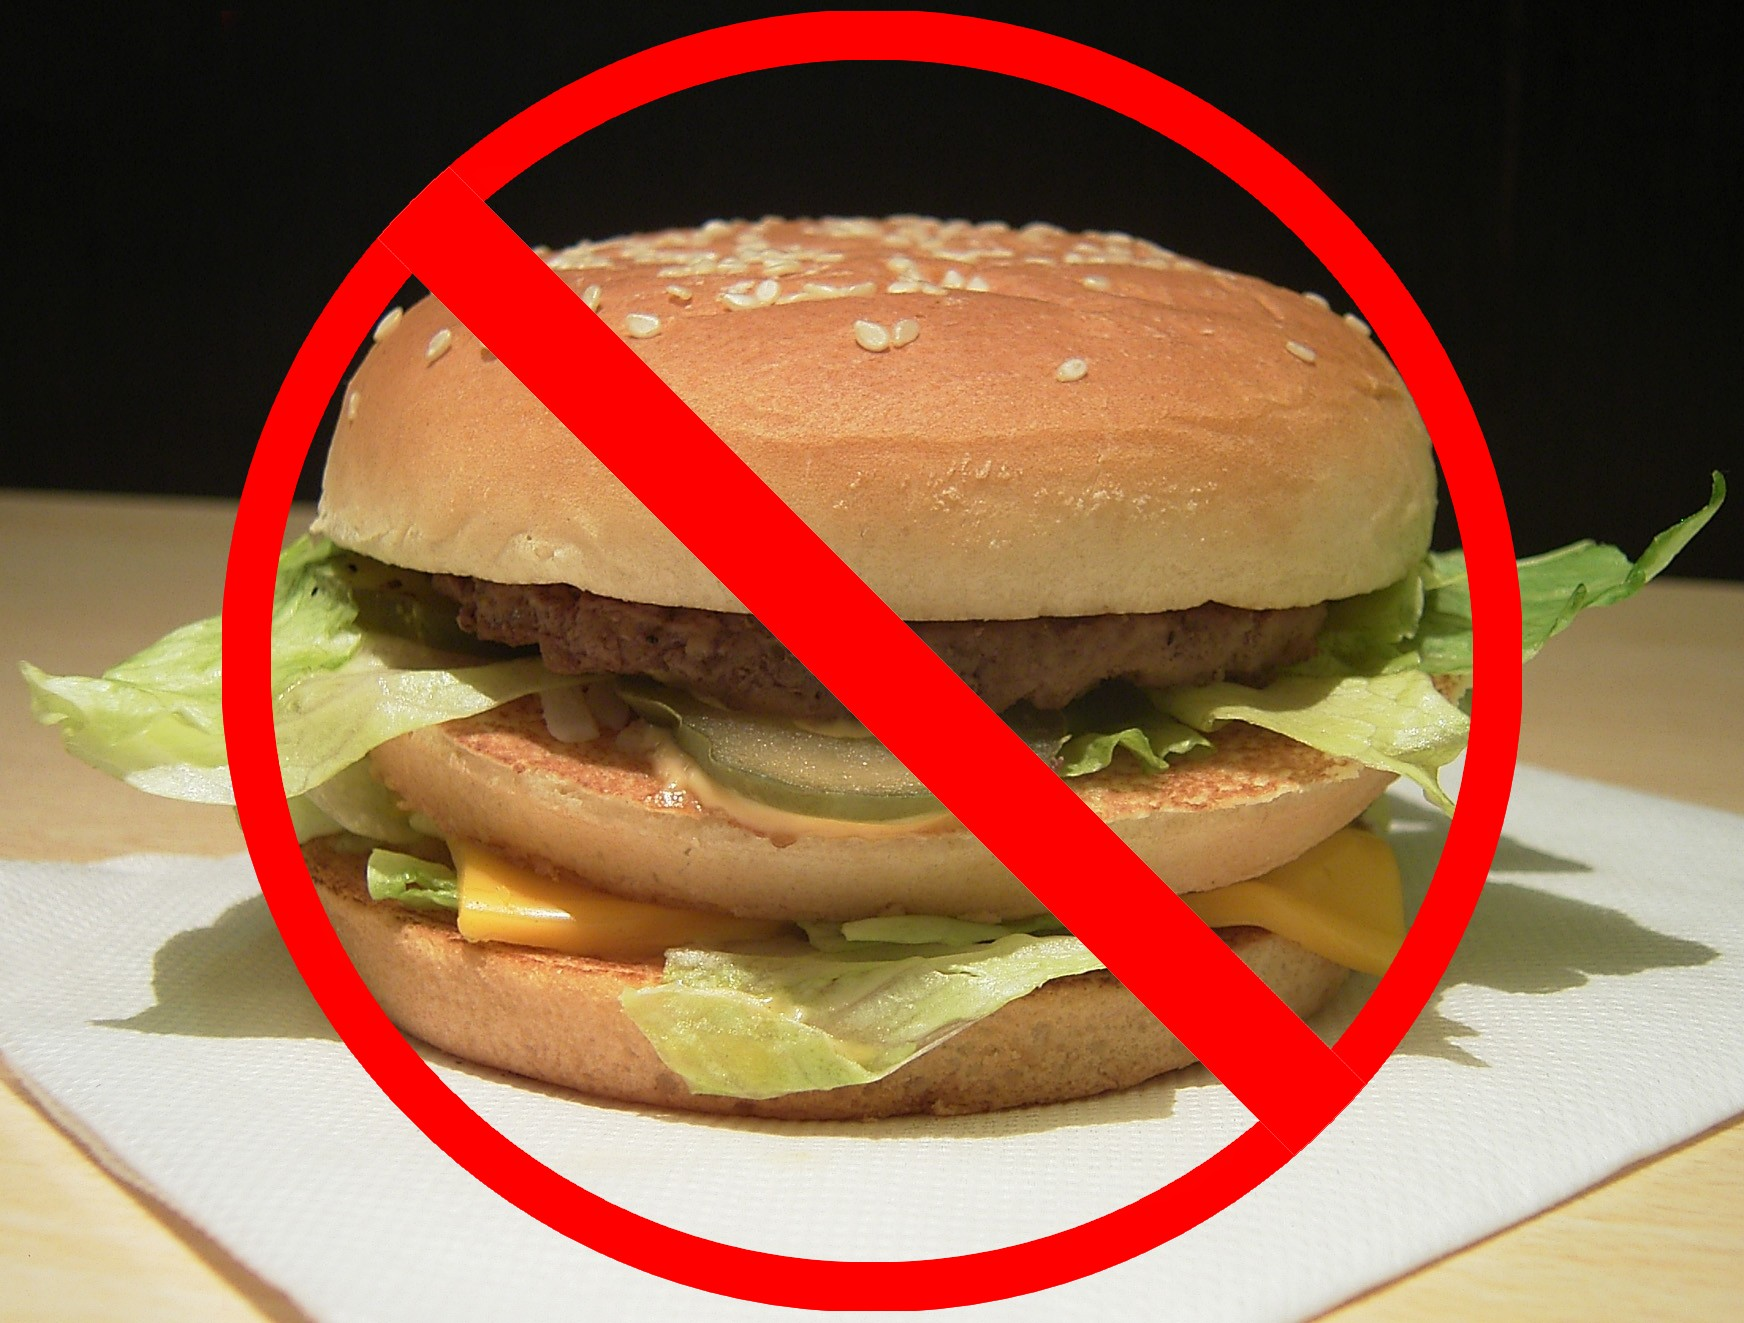 crossed_hamburger_as_expression_of_opinion_about_fast_foods.jpg